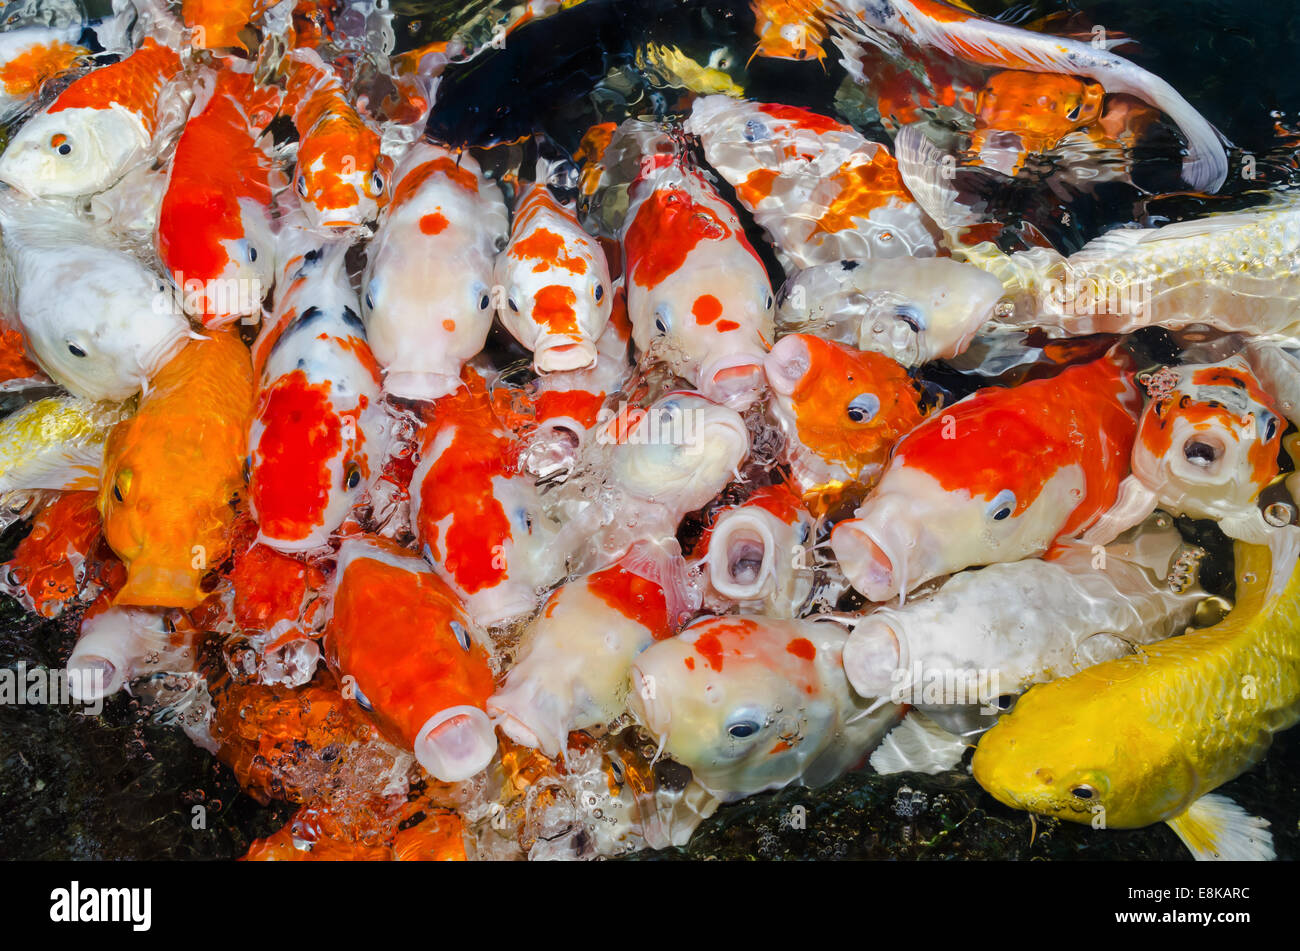 Colorful Koi Carp Fish Group Stock Photos & Colorful Koi Carp Fish ...